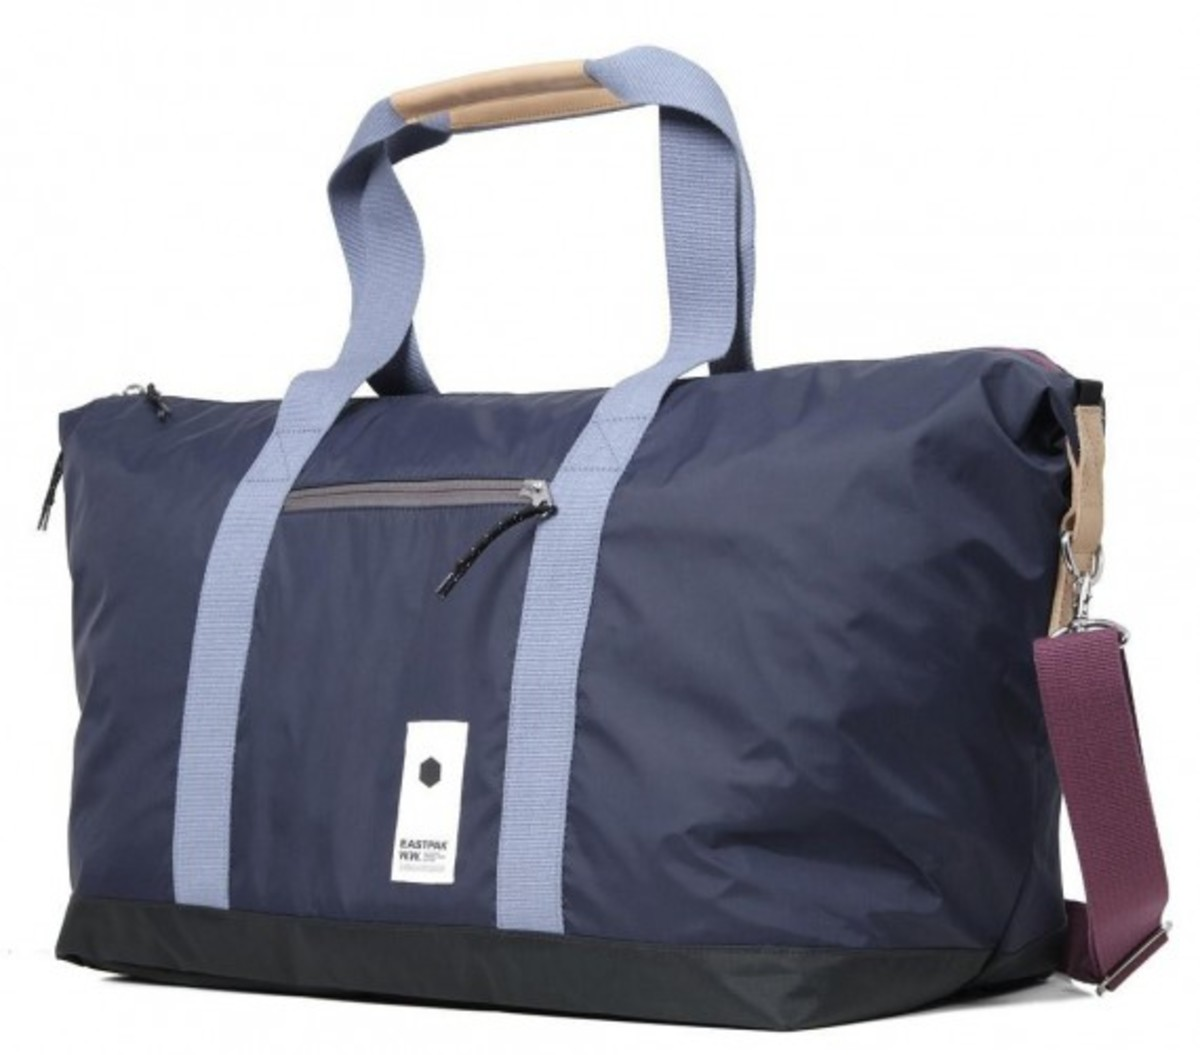 wood-wood-eastpak-collection-available-07